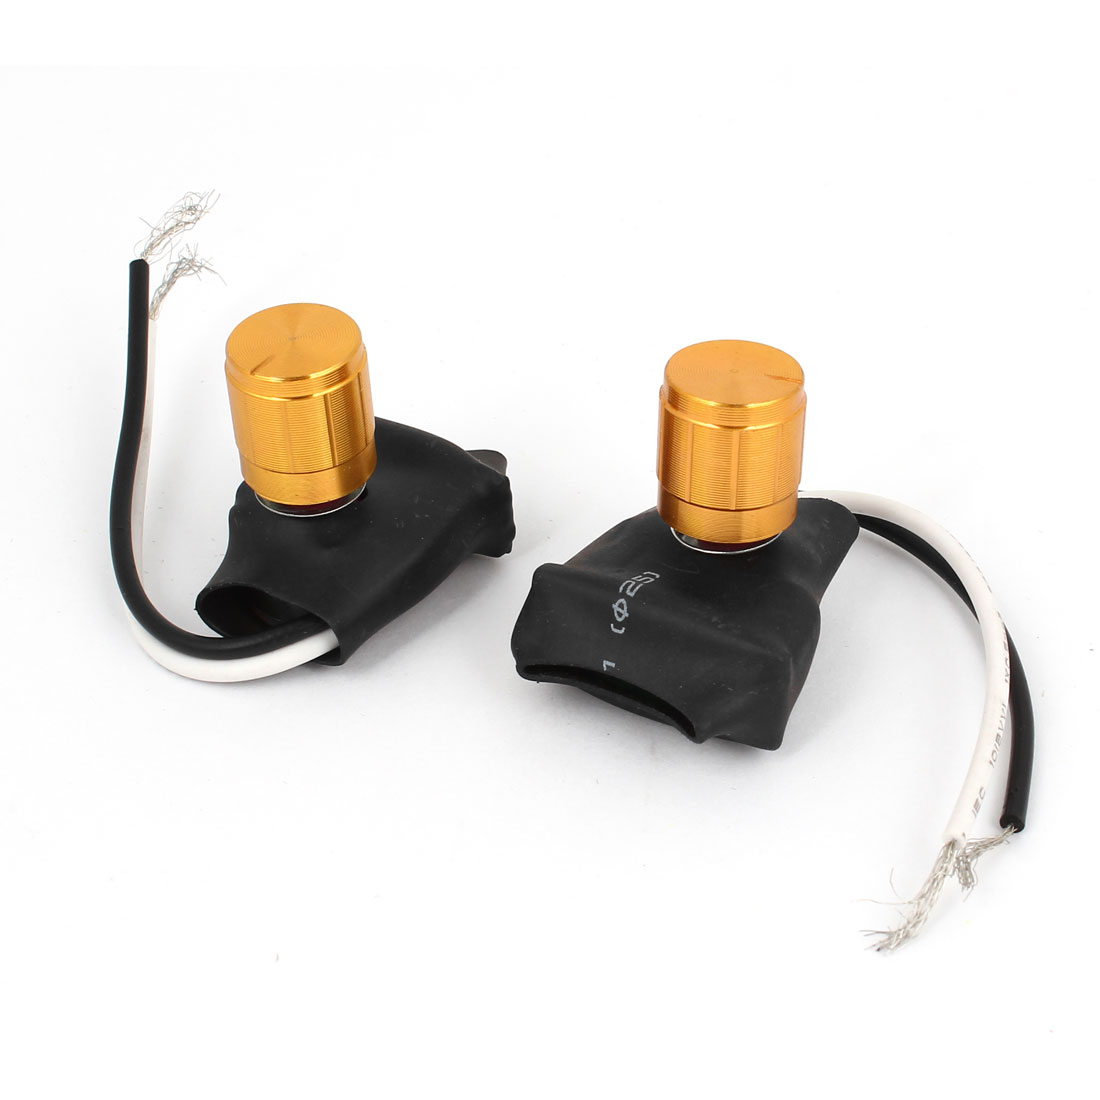 2pcs AC220V 5A Table Lamp Light Bulb On/Off Dimmable Dimmer Control Switch